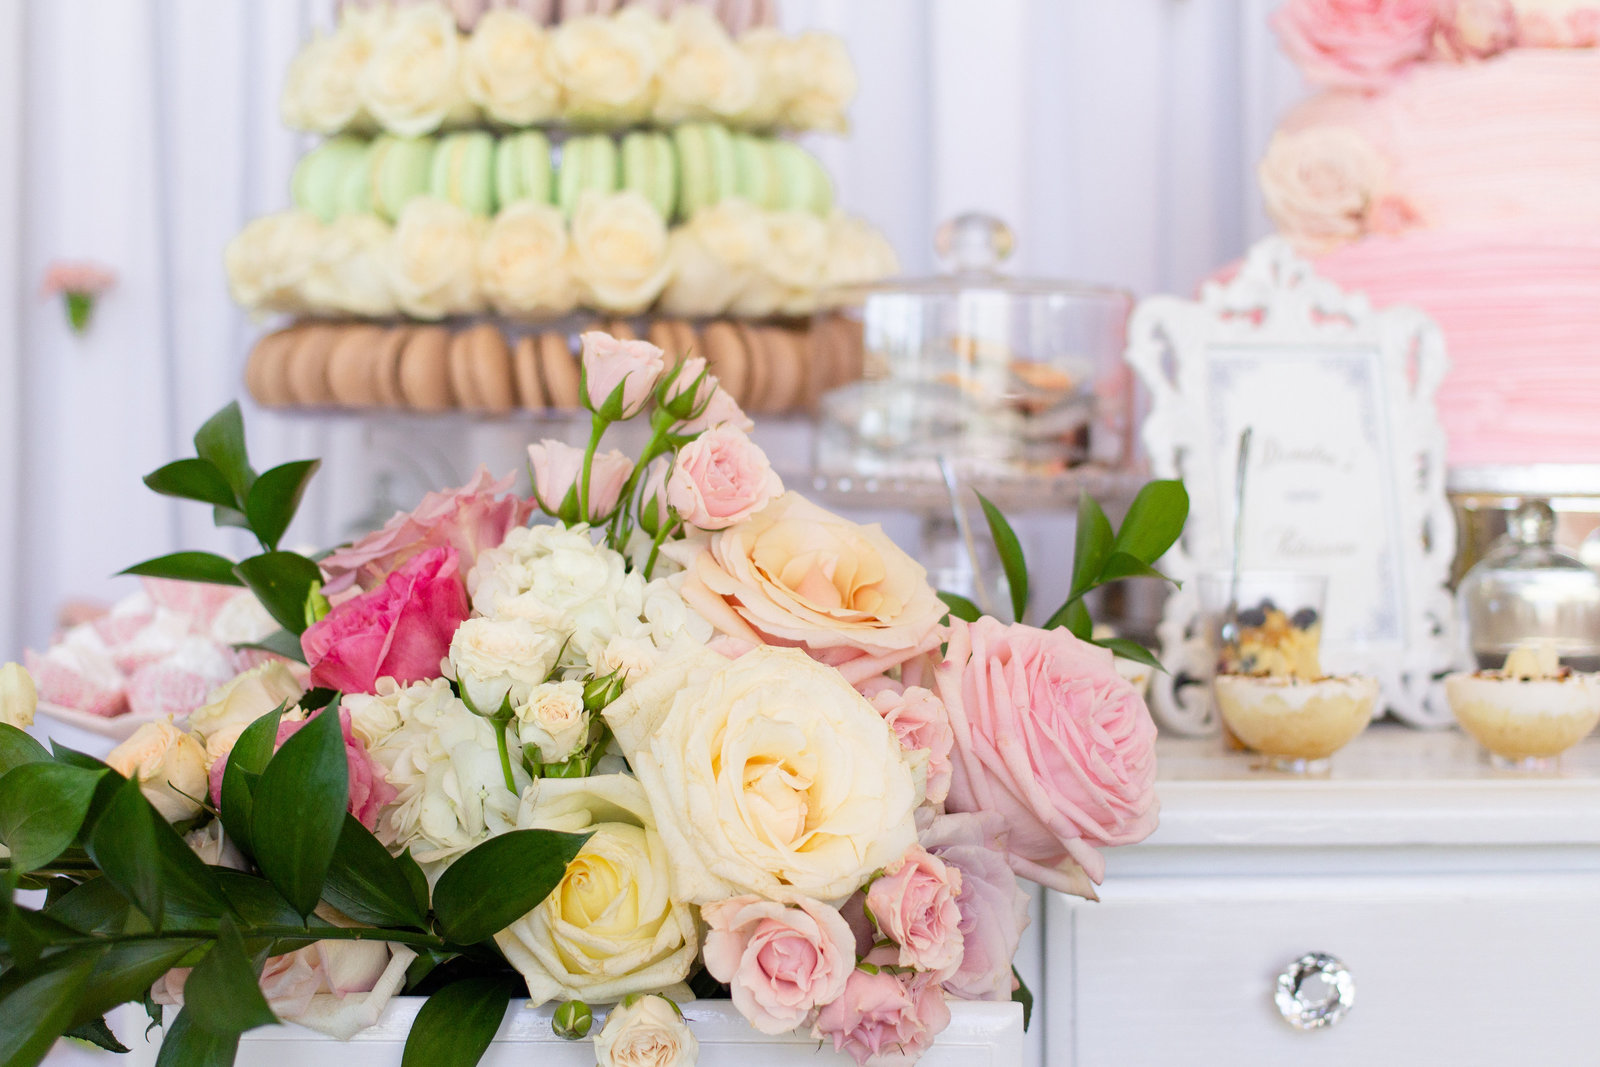 Bright pinks, whites and green flowers in high-end white dress with desserts in background at reception on wedding day